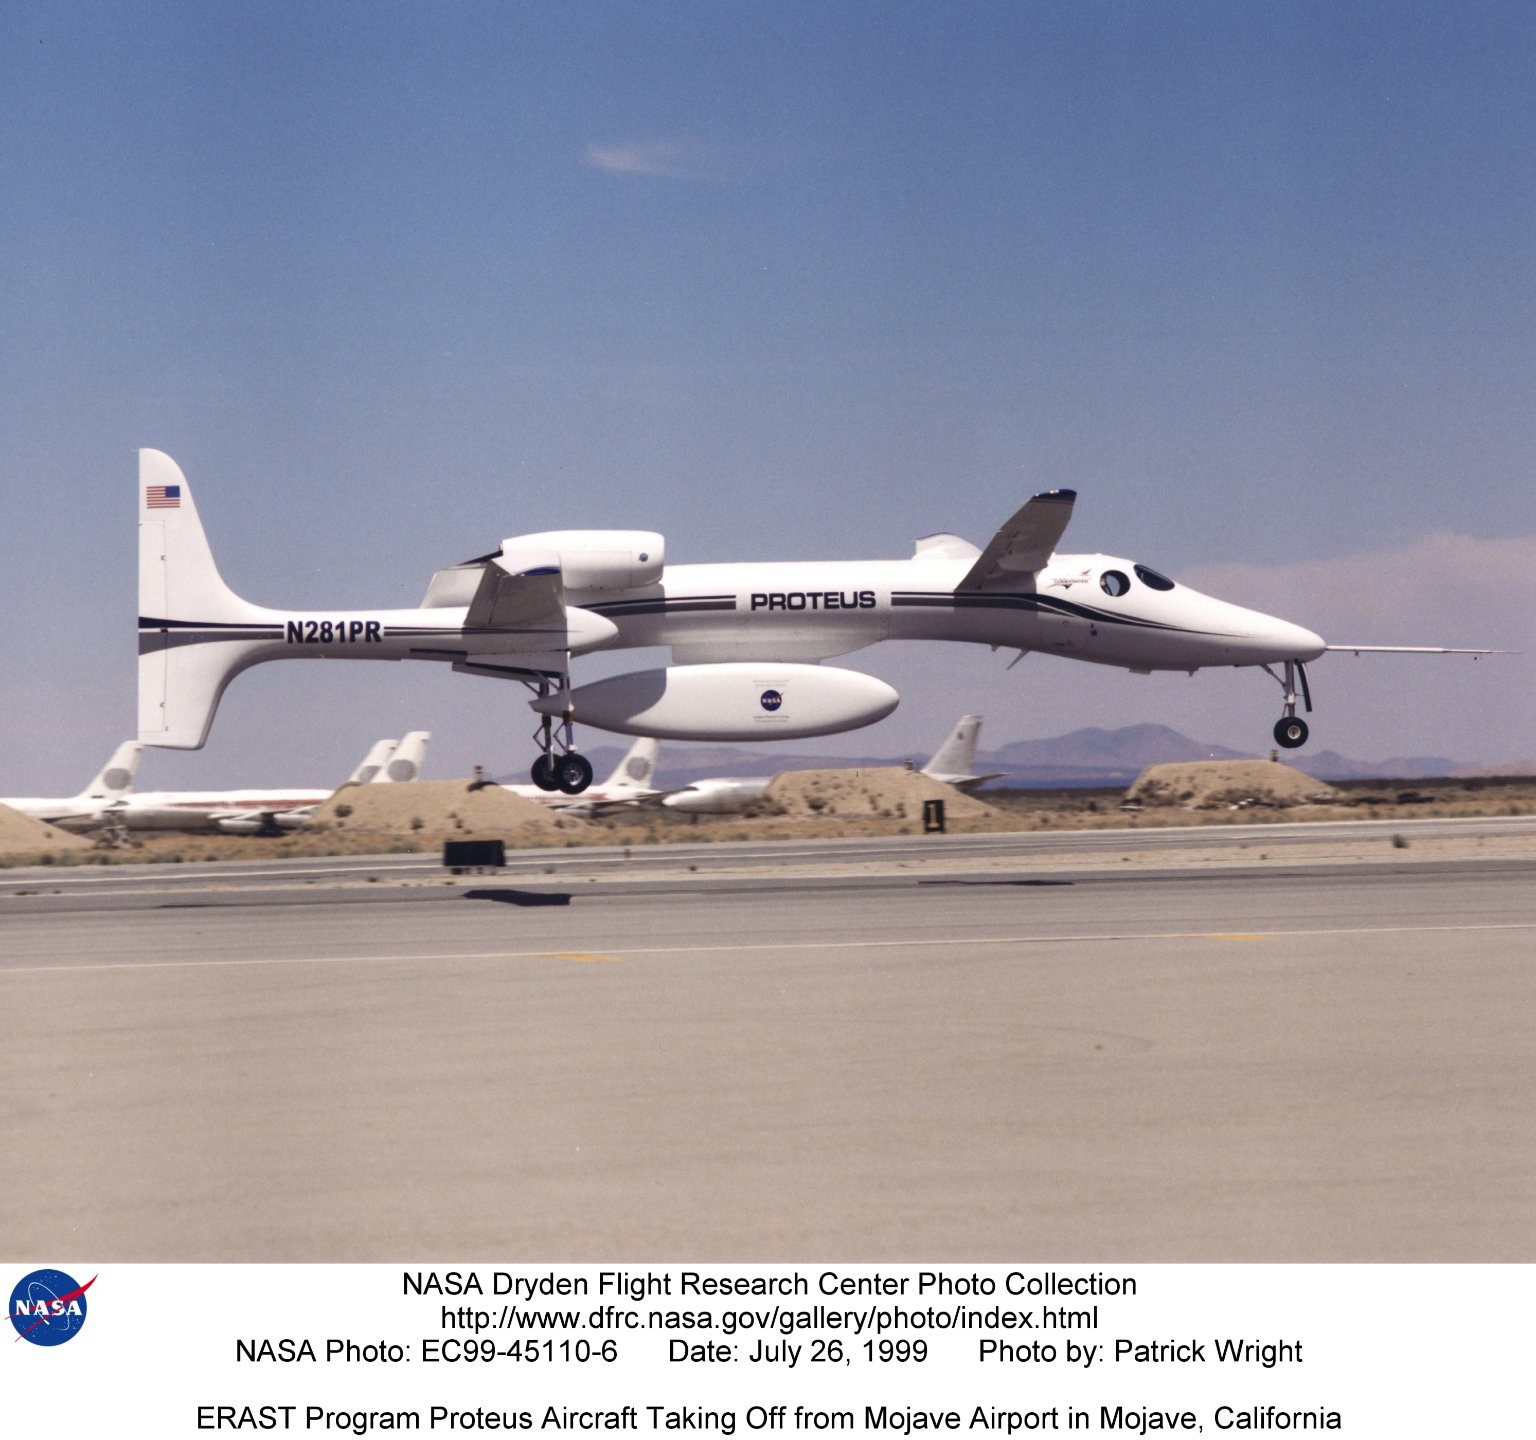 ERAST Program Proteus Aircraft Taking Off from Mojave Airport in Mojave, California